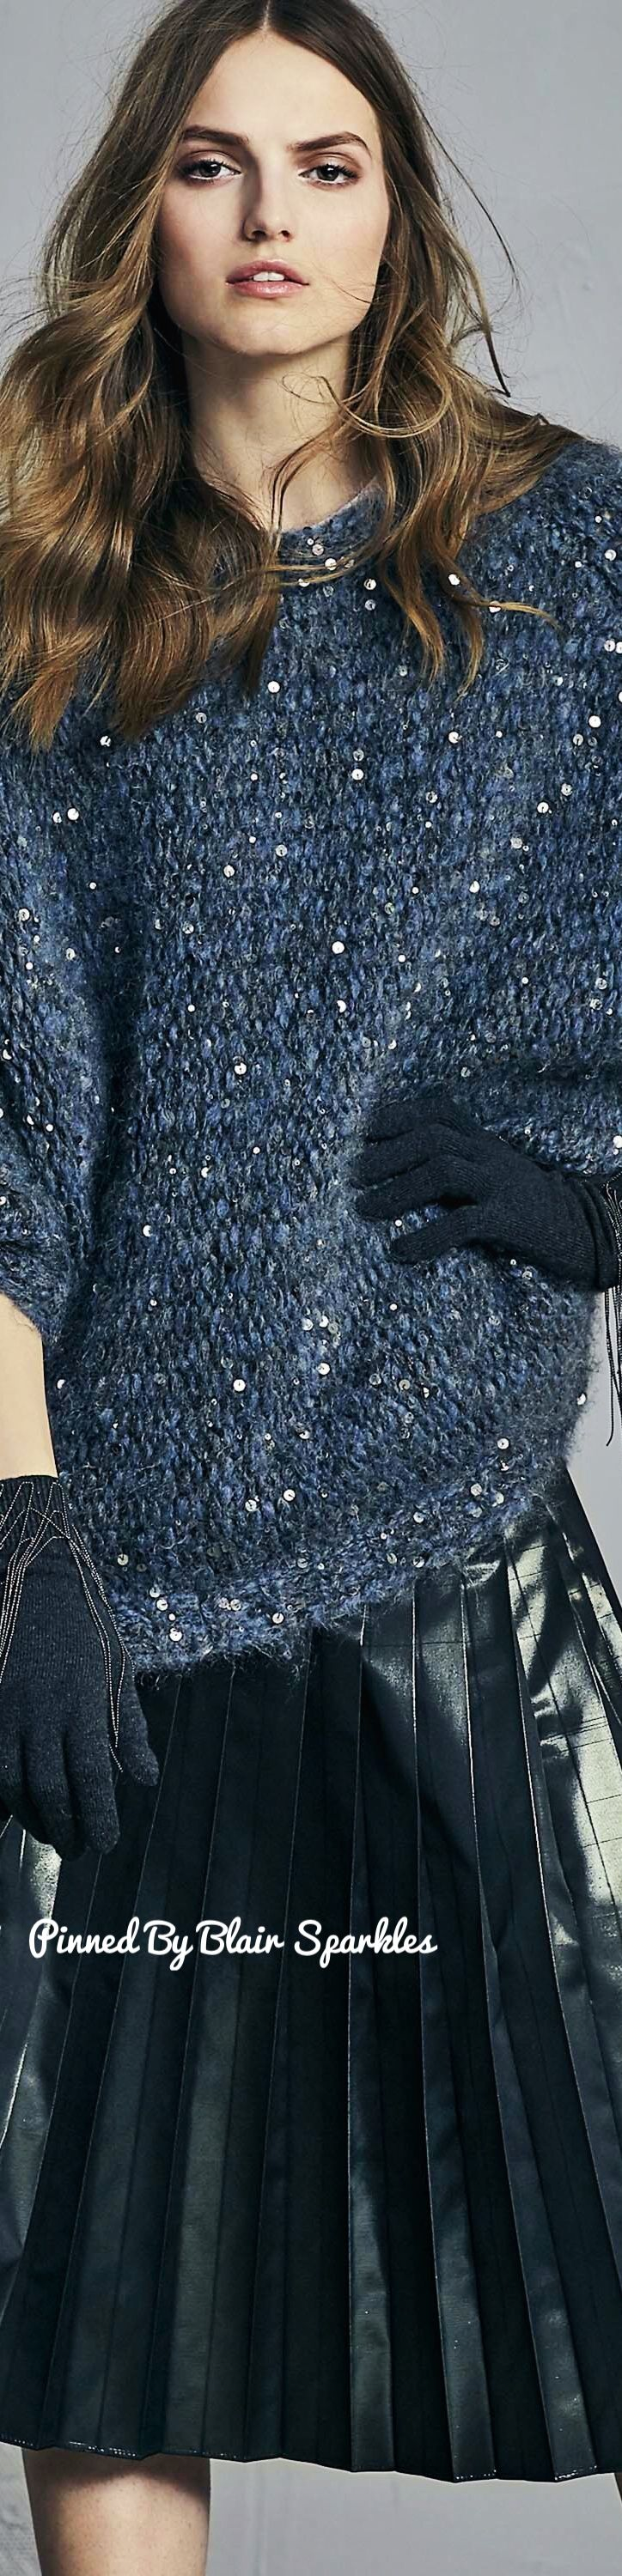 Brunello Cucinelli Fall RTW 2017 (MFW)♕♚εїз | BLAIR SPARKLES |